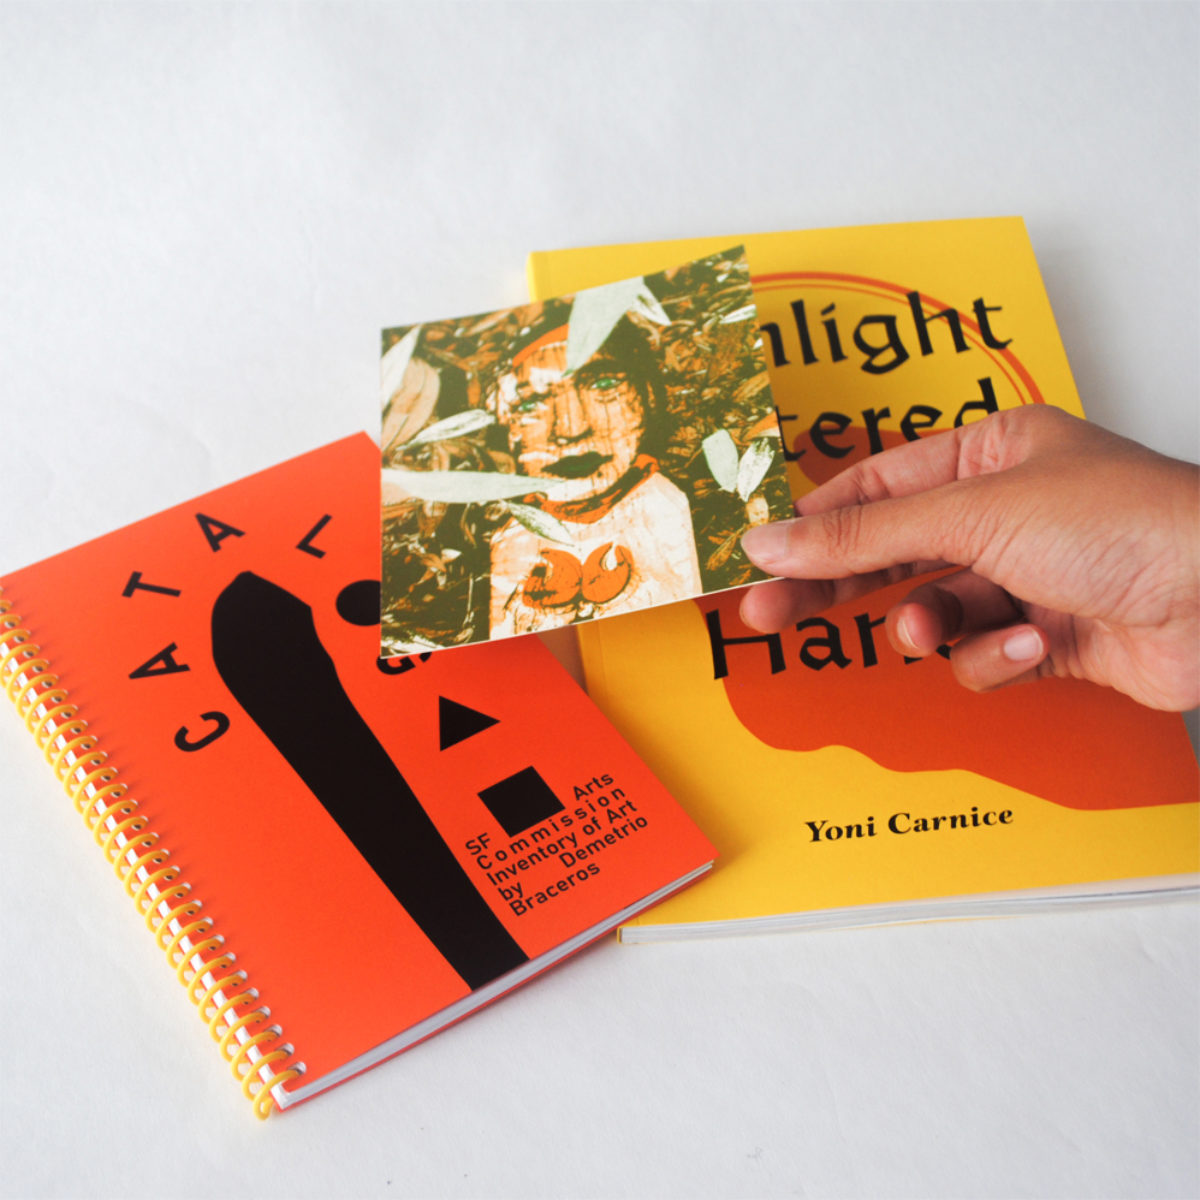 Photo of his new publication Sunlight Entered His Hands p